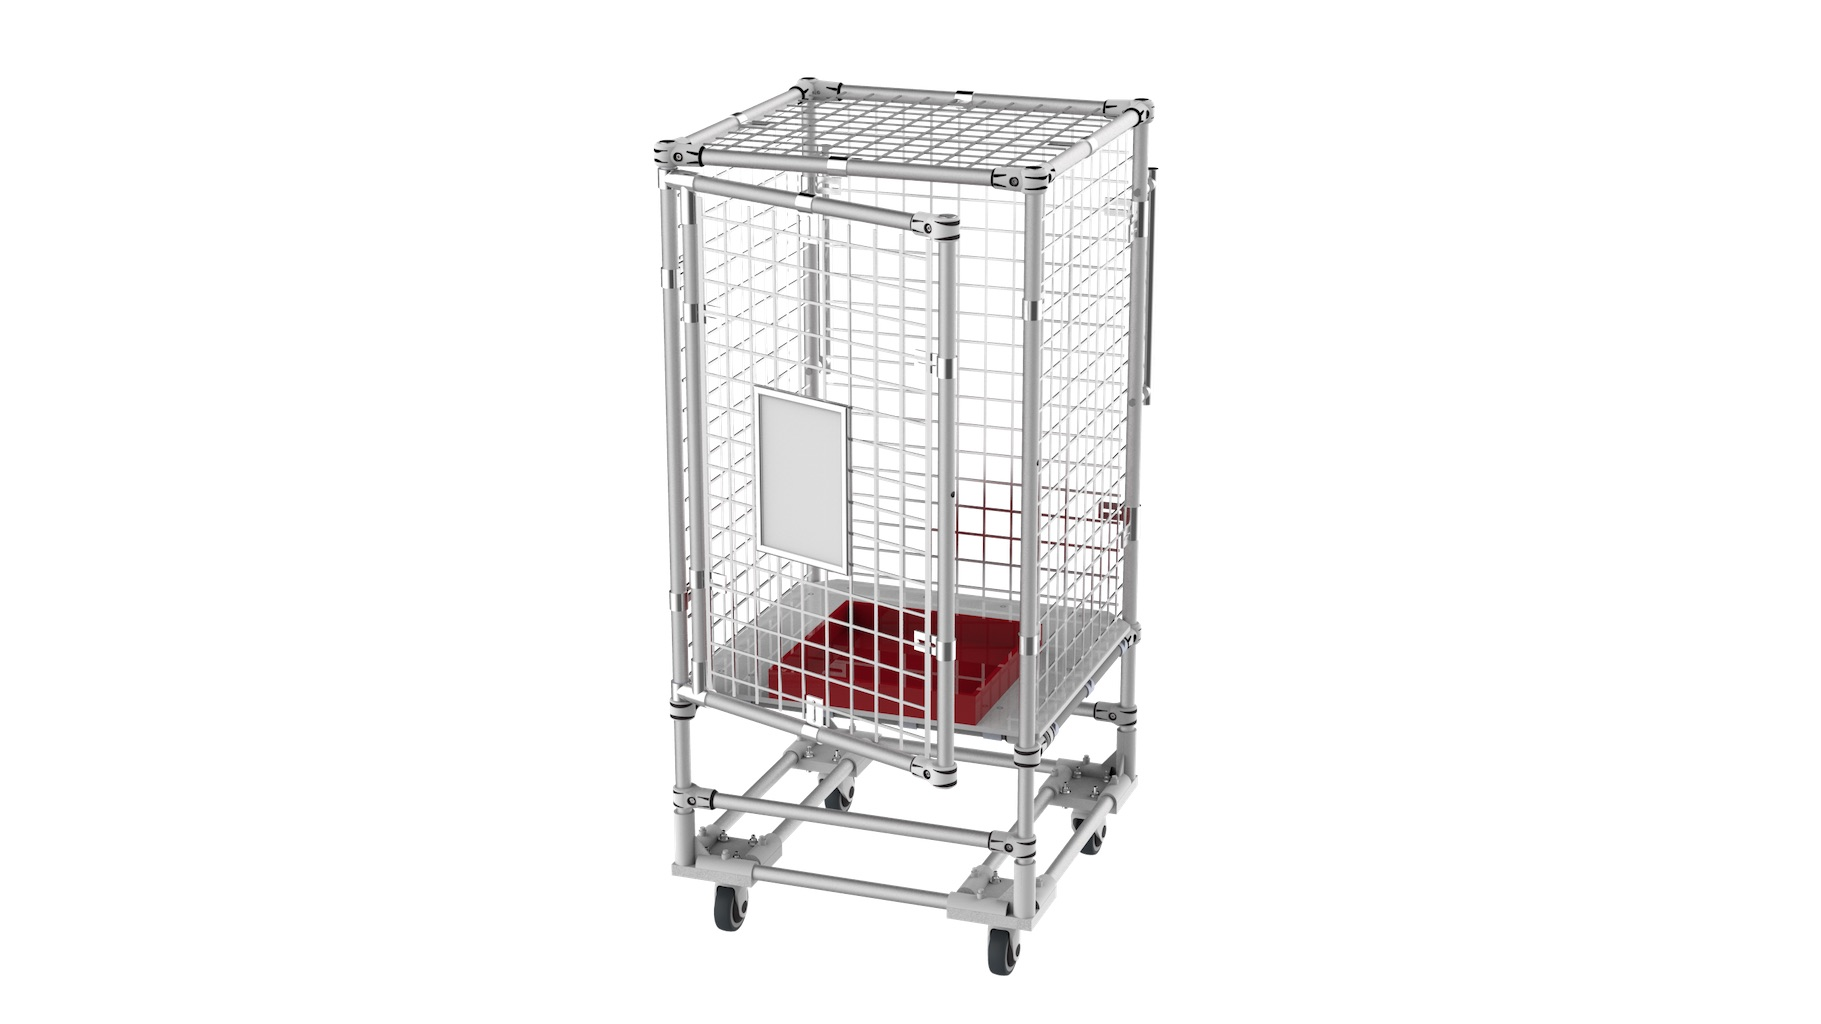 Pharmaceutical - Storage trolley for finished products to be kept under key/padlock